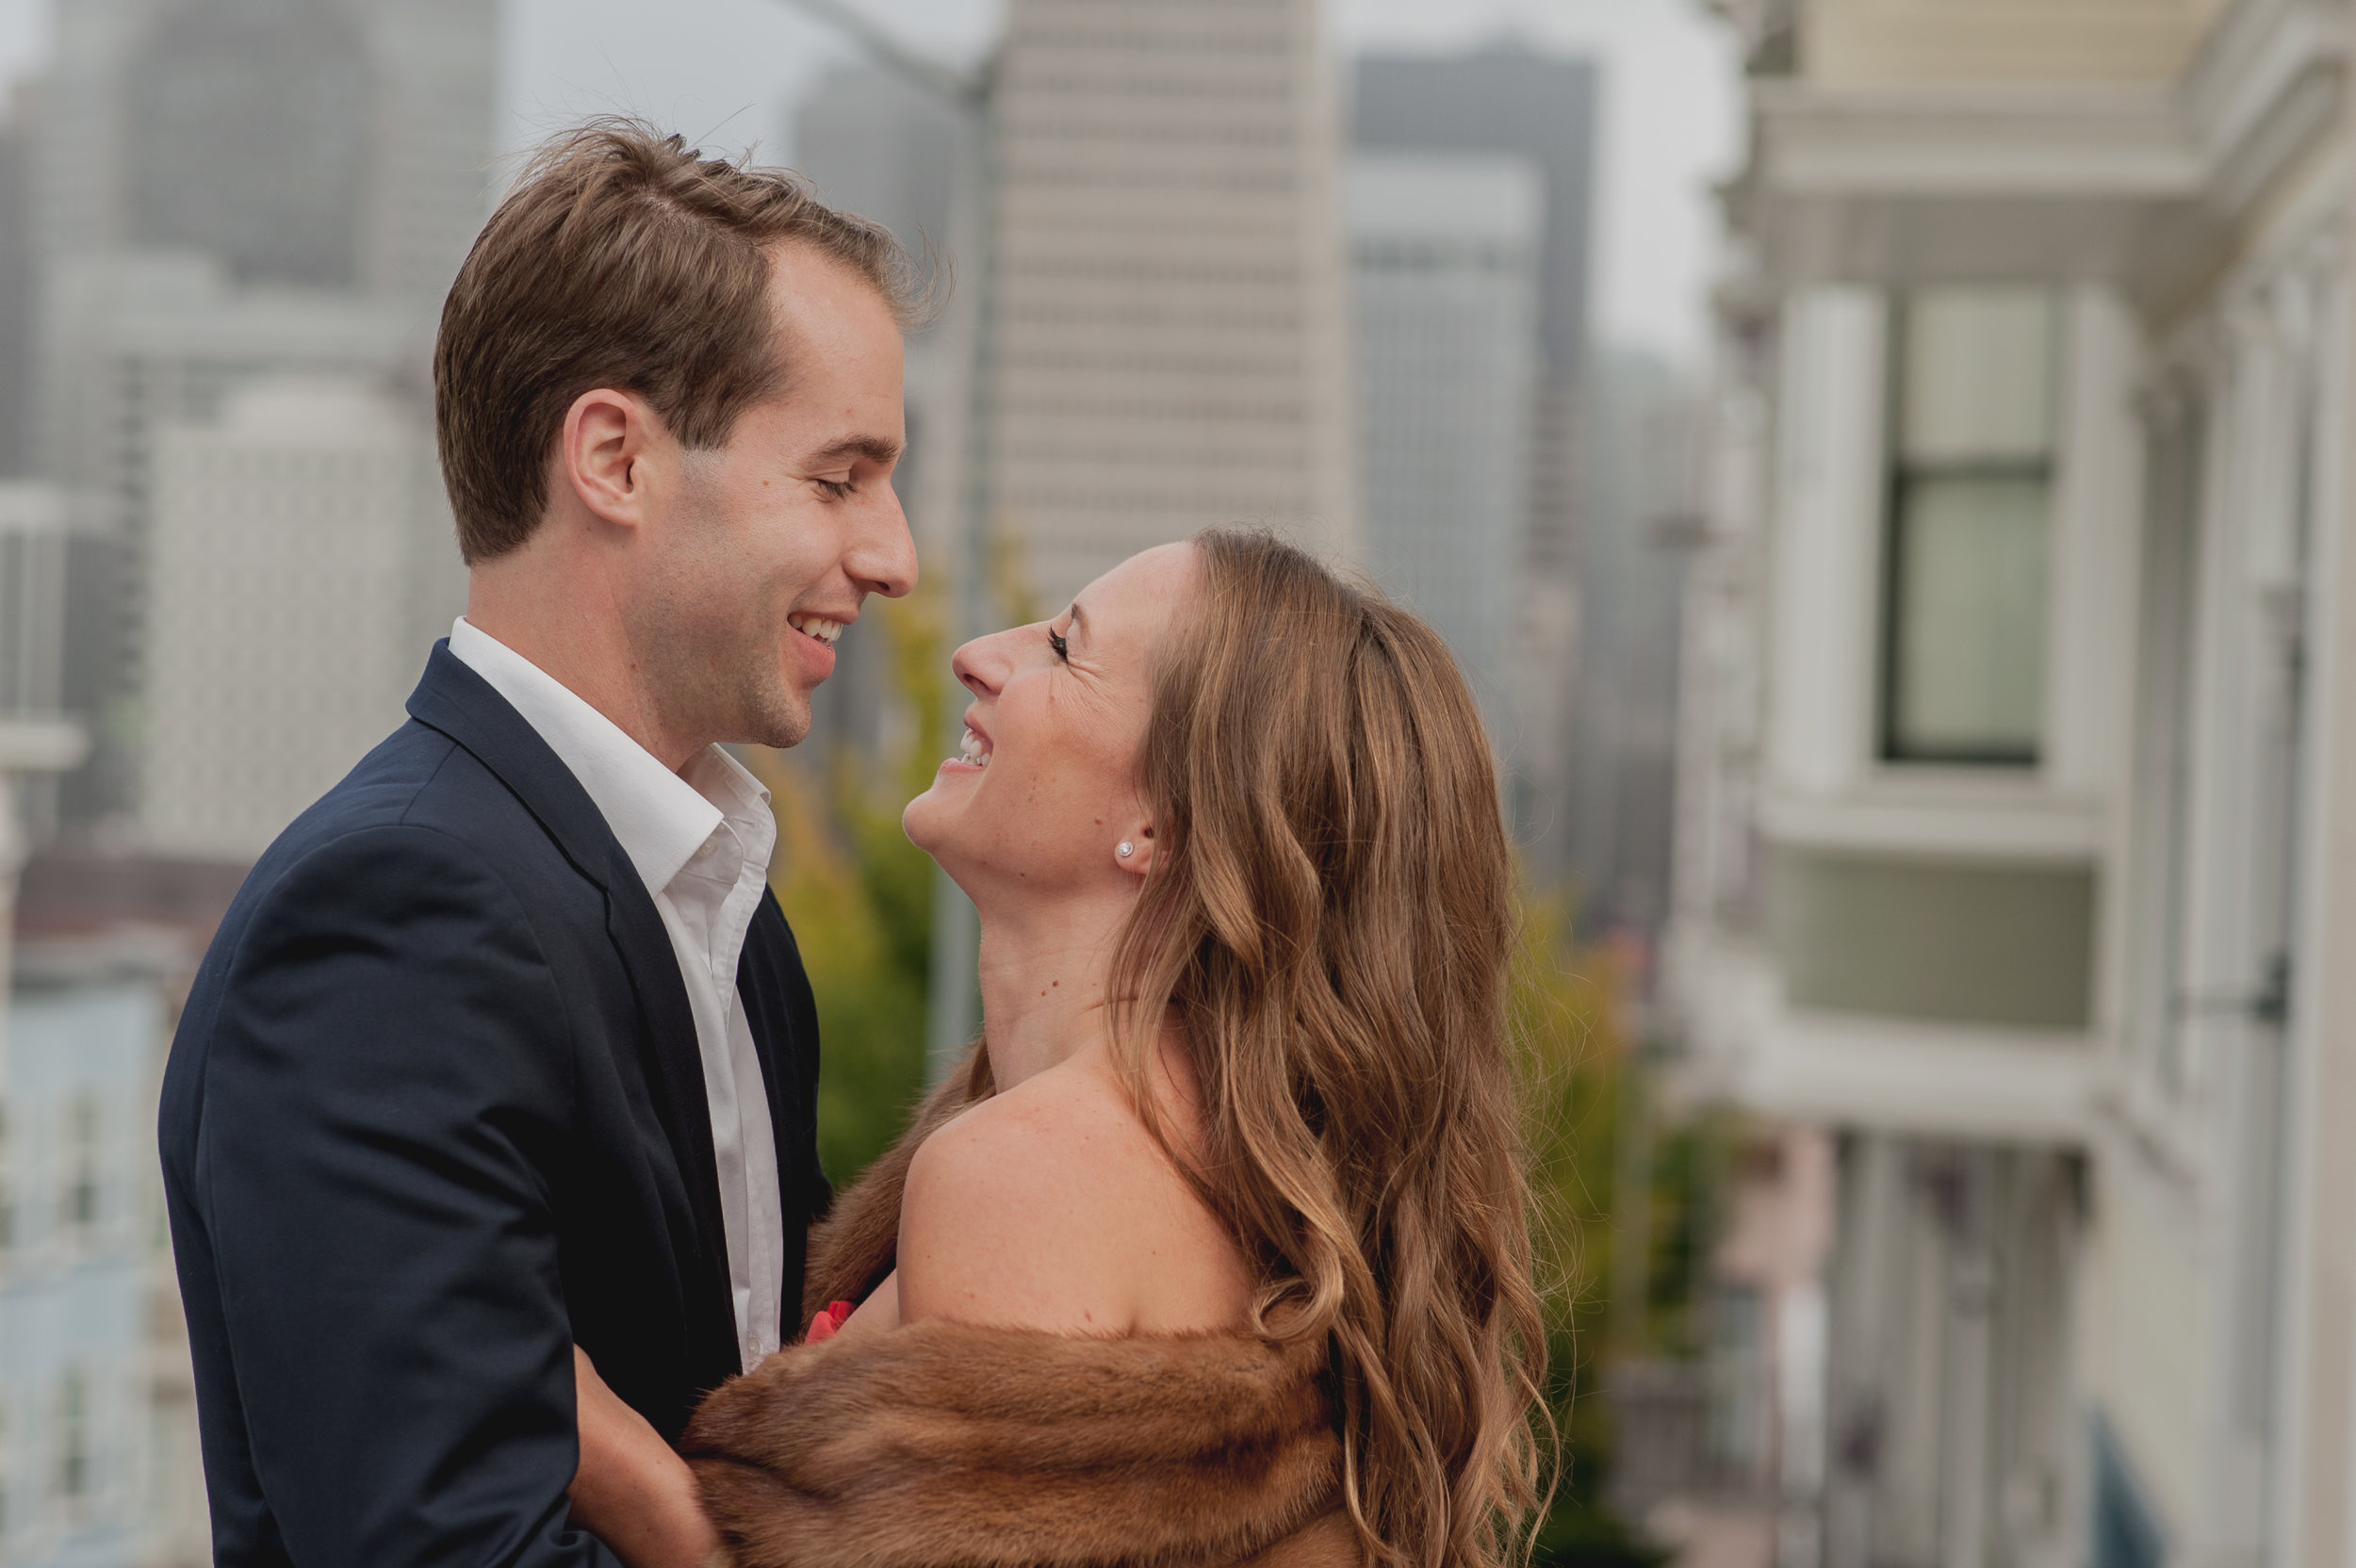 san-francisco-engagement-photographer-vc03.jpg